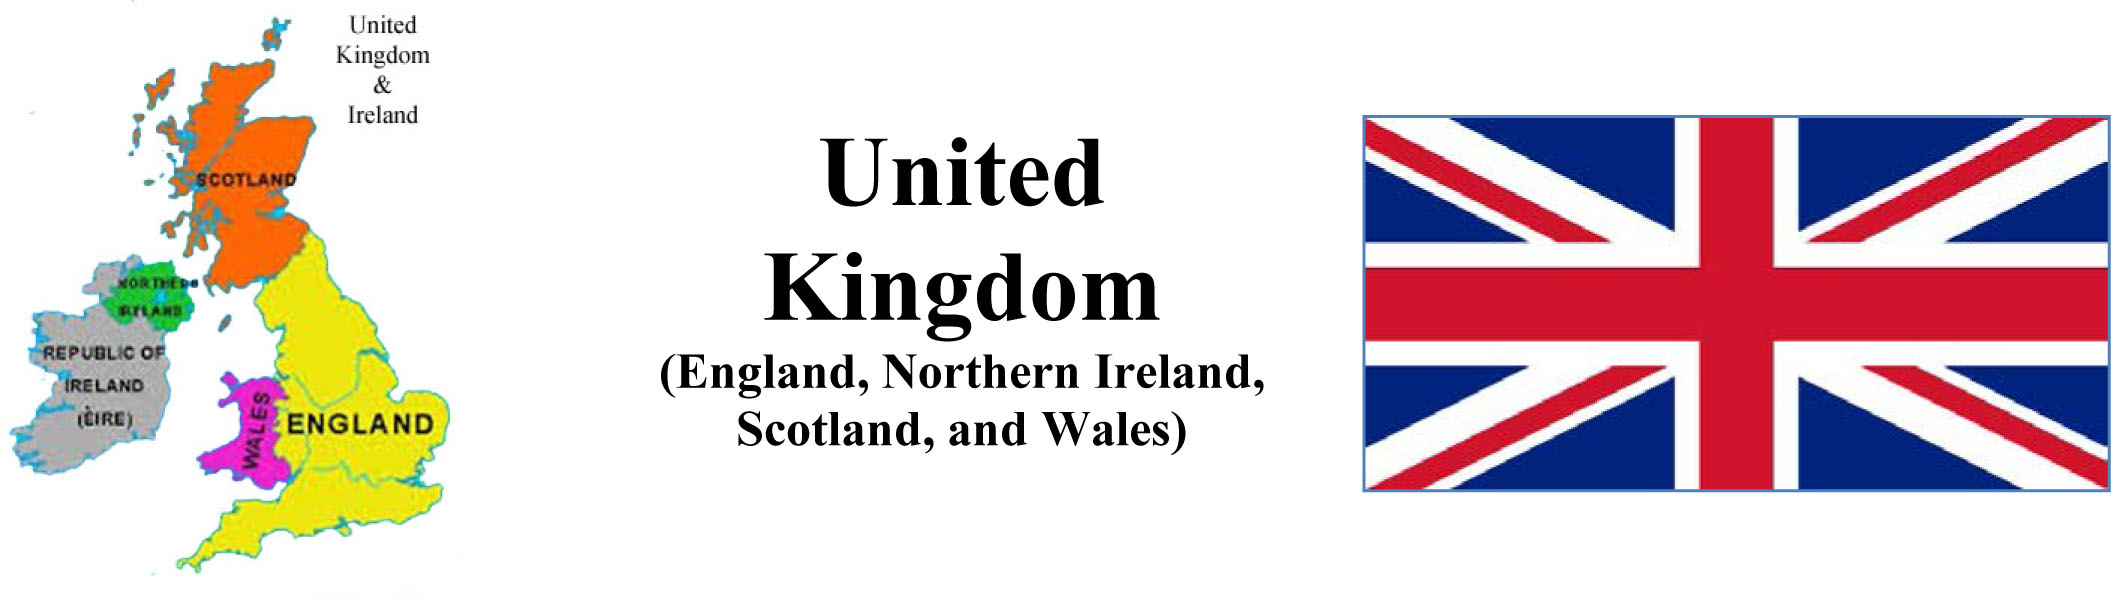 Political Map of United Kingdom - Nations Online Project |United Kingdom Scotland Ireland